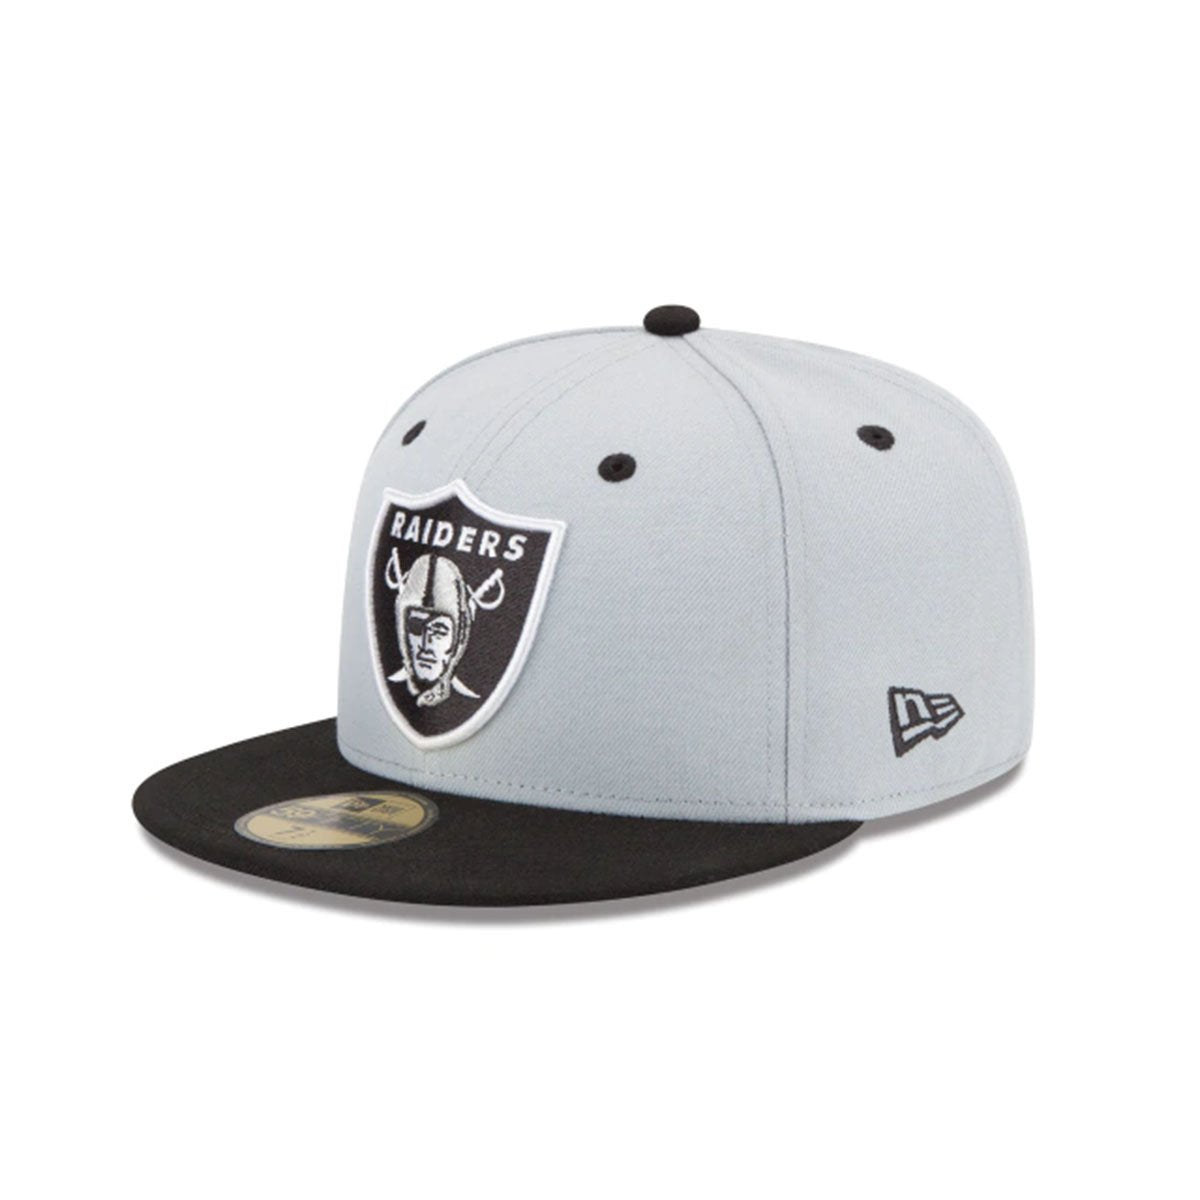 LAS VEGAS RAIDERS 2TONE 59FIFTY FITTED GRAY/BLACK